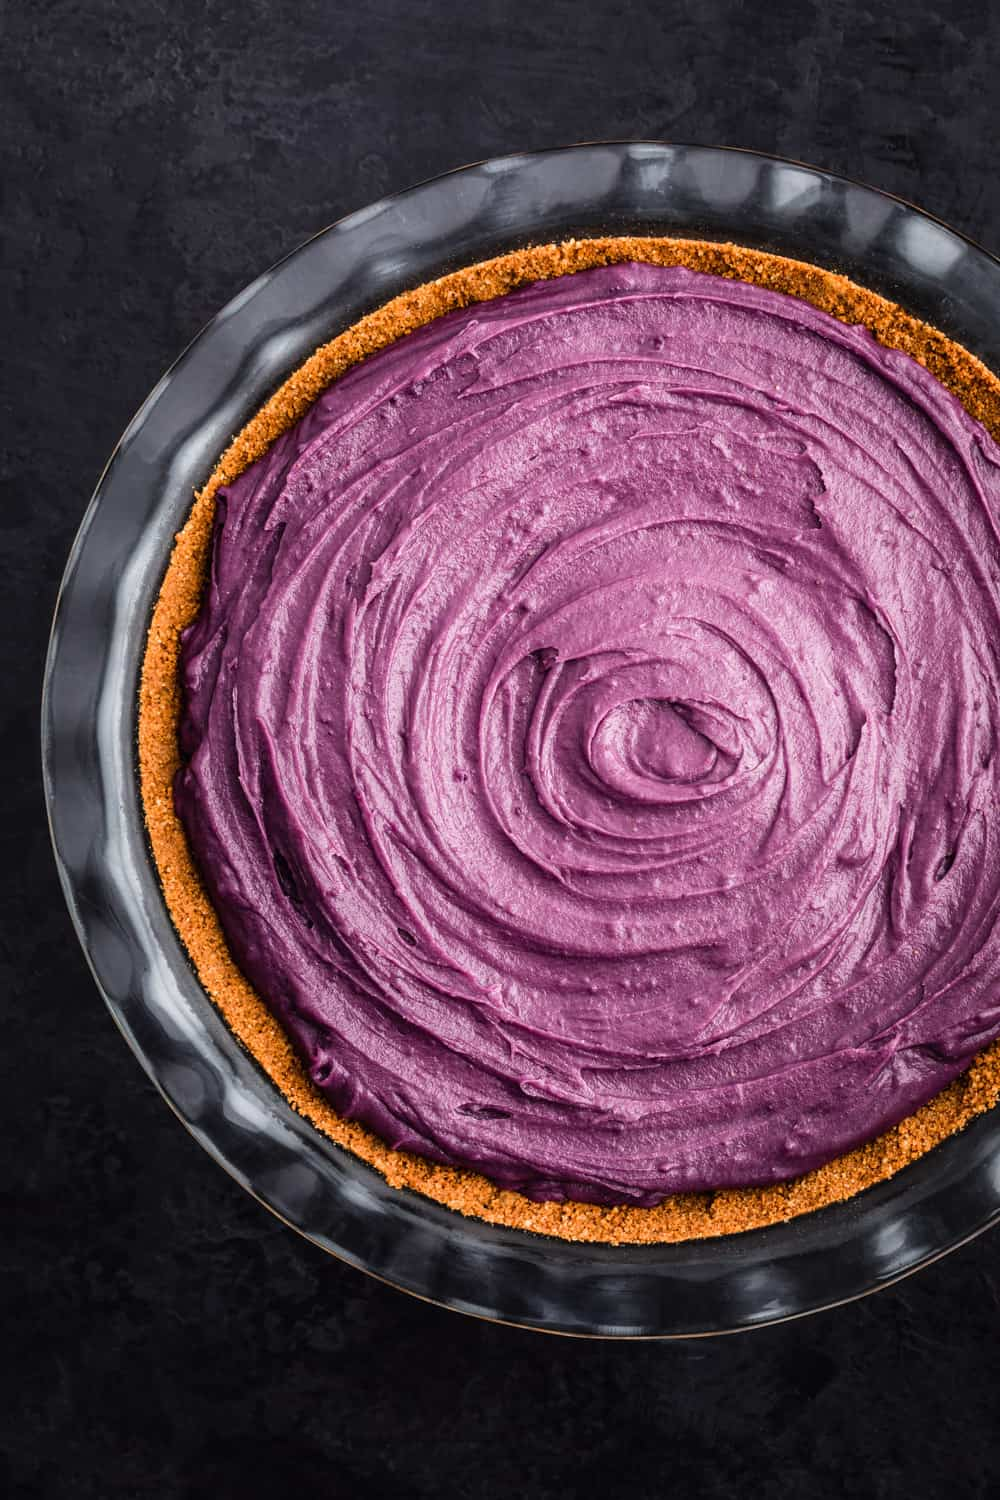 Purple sweet potato pie has been poured into the gingersnap curst and is ready for the oven.